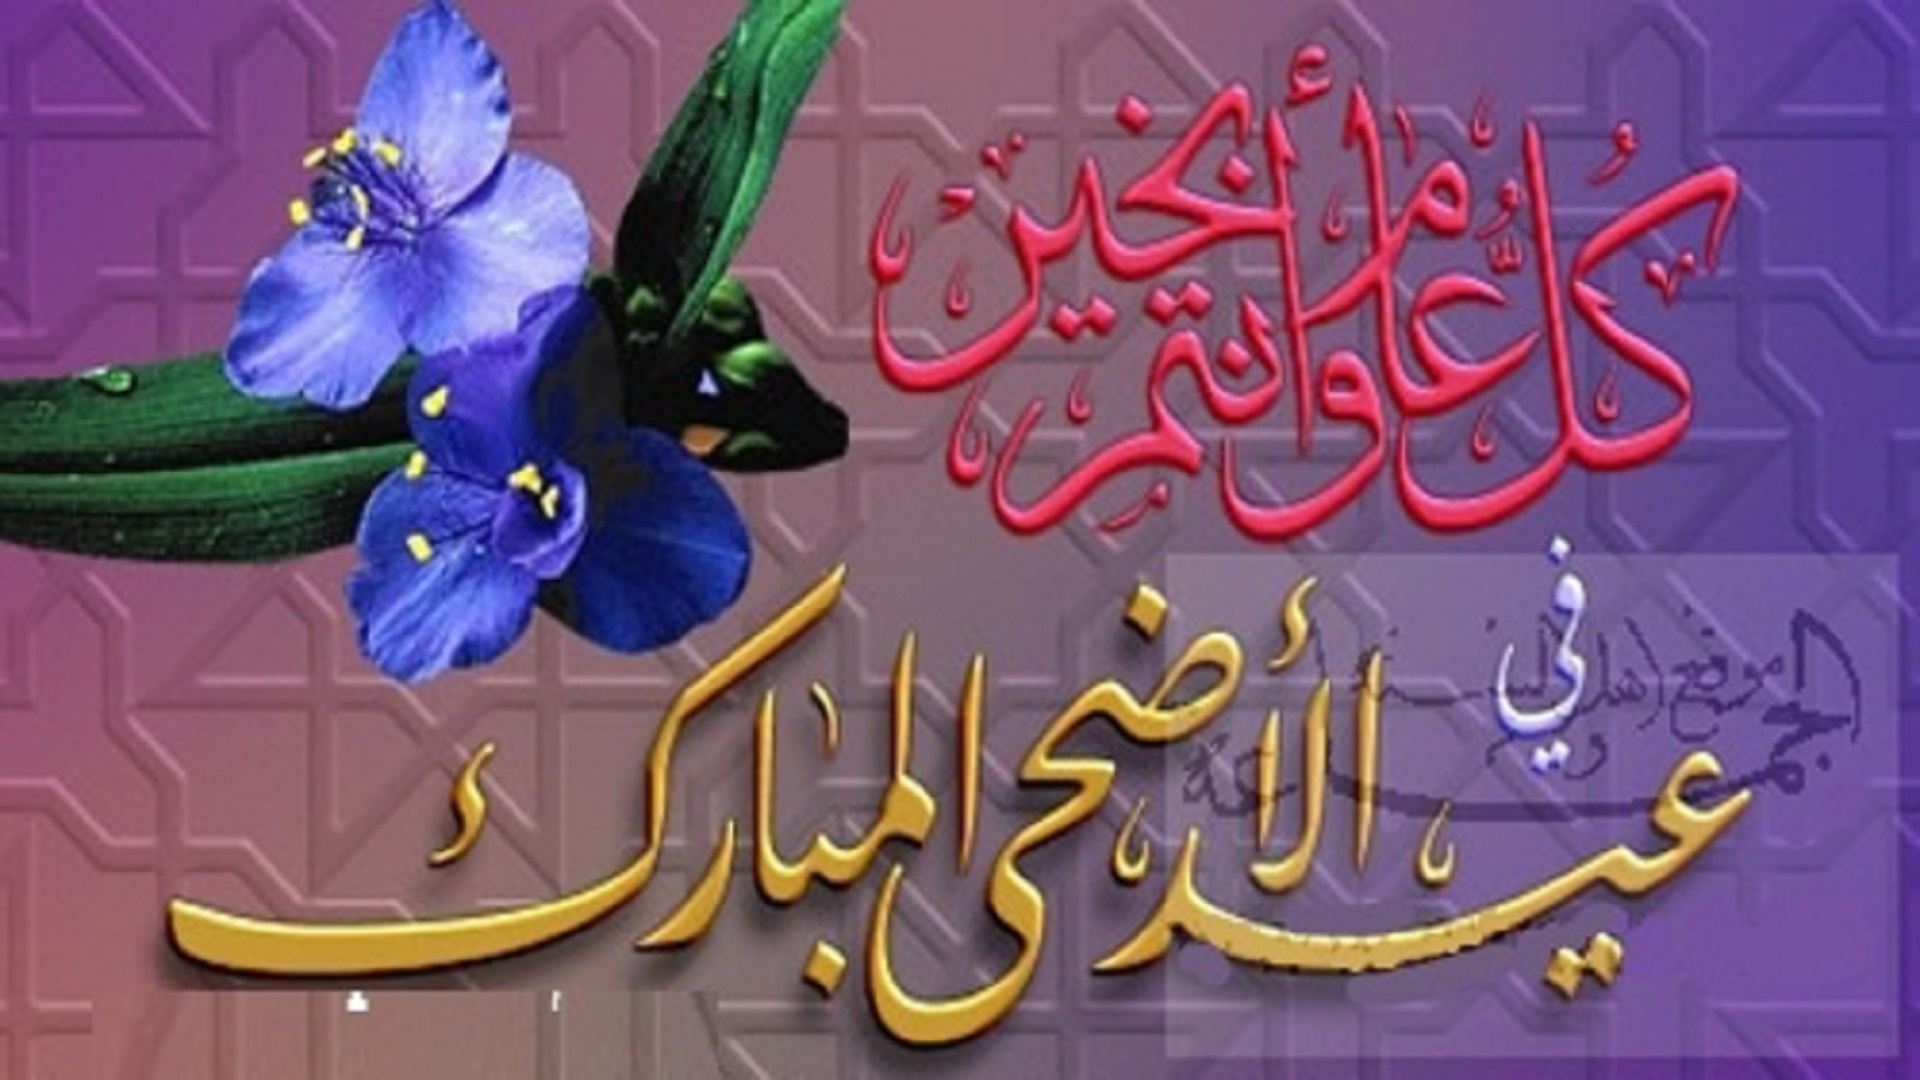 Eid Ul Adha Arabic Free Hd Wallpapers Hd Wallpaper